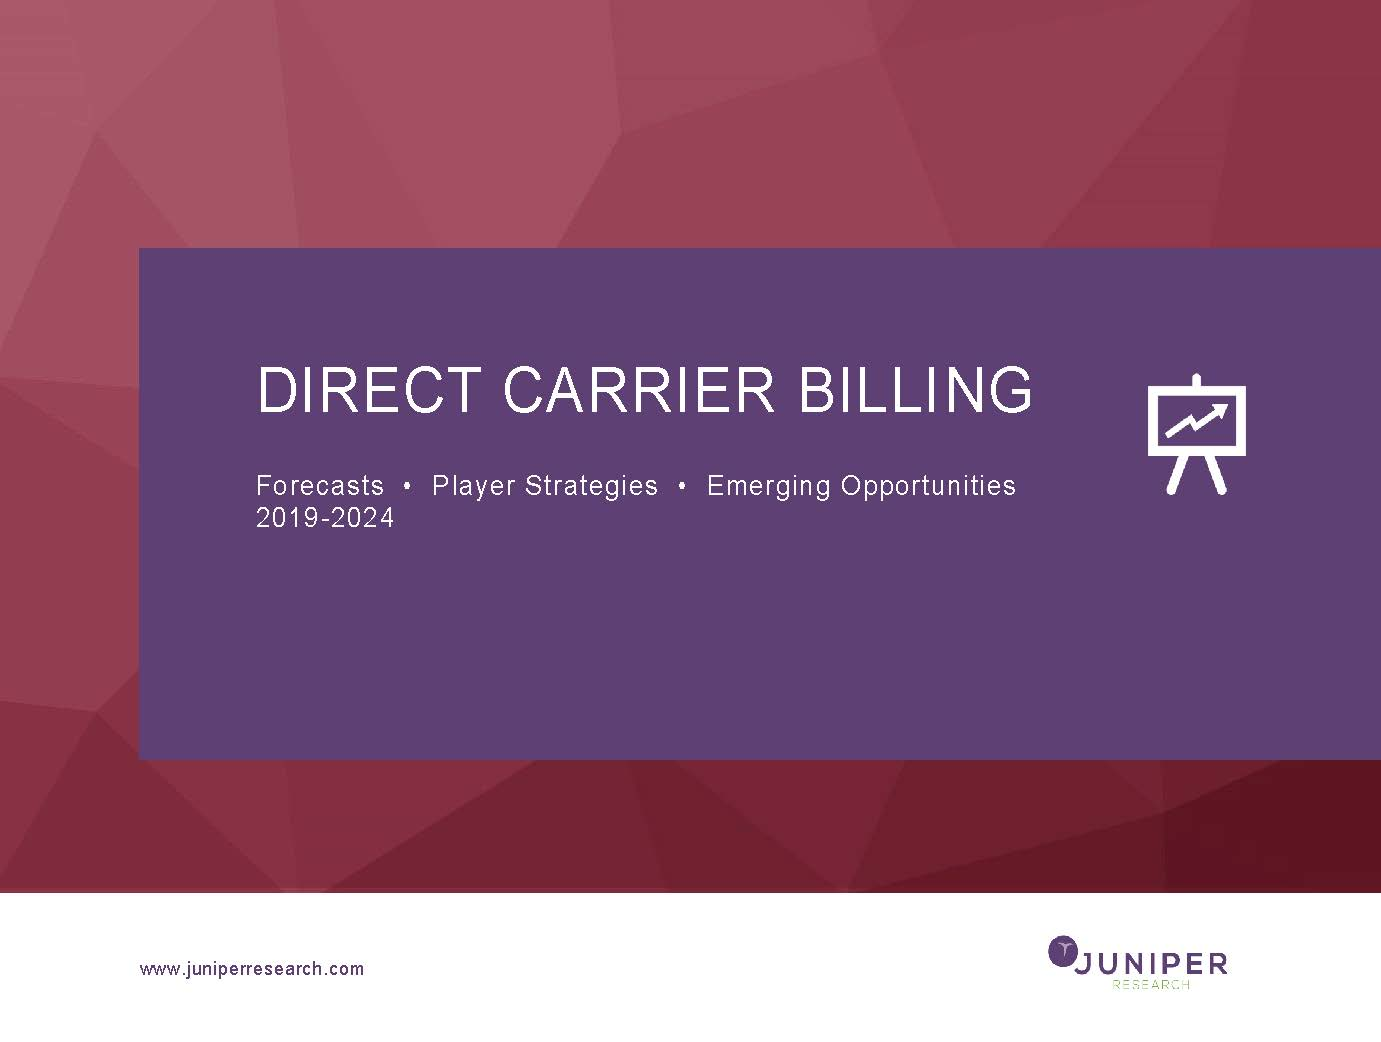 Direct Carrier Billing